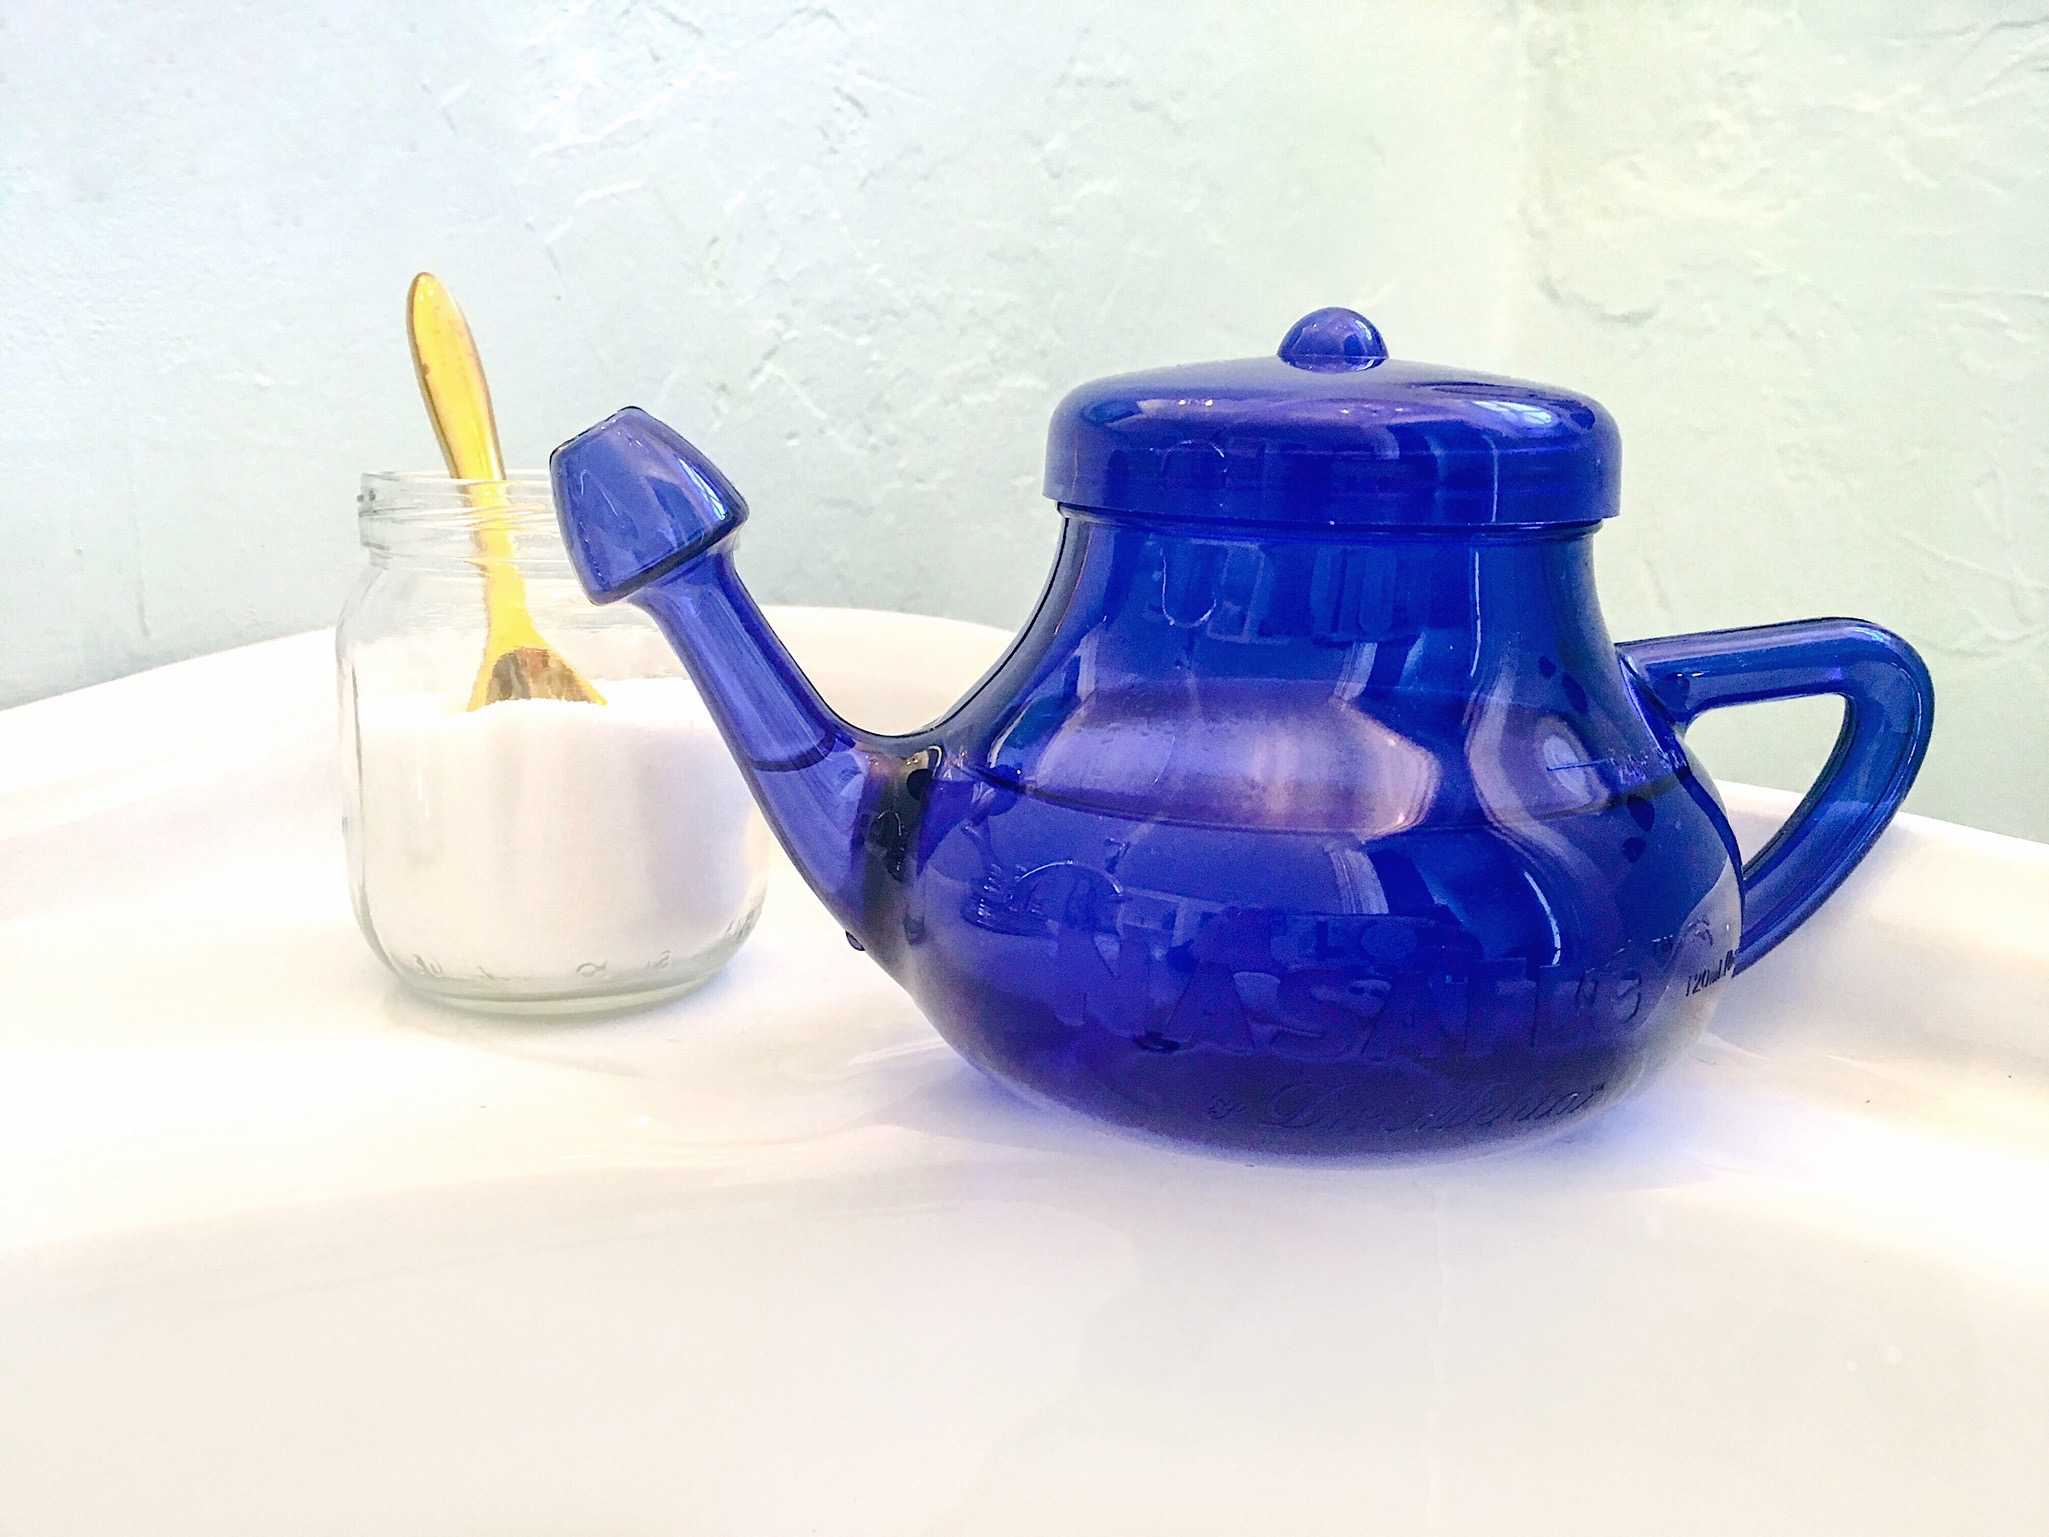 Homemade solution. - -Courtesy: Grandma DannaIngredients:Mix 2 Tbsp salt to 1 tsp baking soda. Add 1 drop rosemary essential oil and 2 drops eucalyptus essential oil. Put 1/8 tsp of the solution in your neti pot and mix with water. (It's best to use distilled).